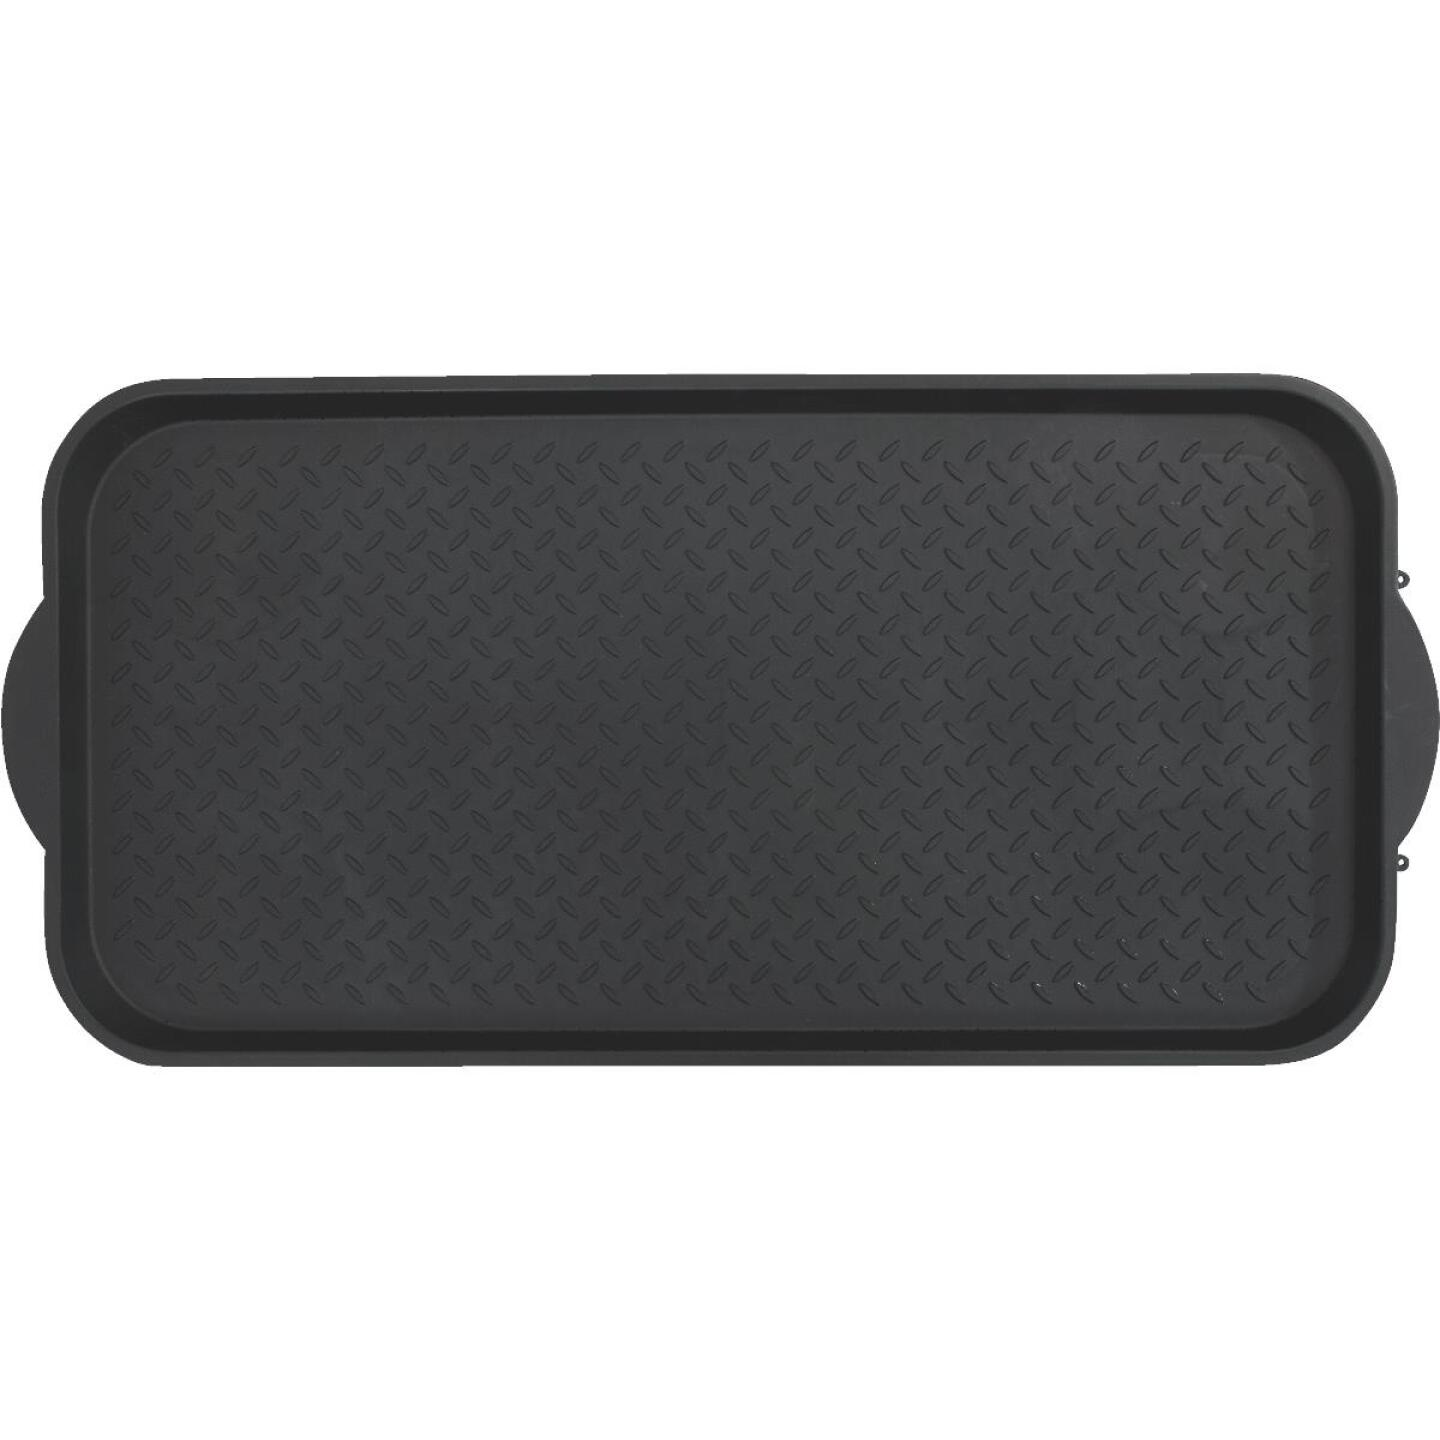 XL 18.9 In. x 39.3 In. Black Recycled Plastic Boot Tray Image 5